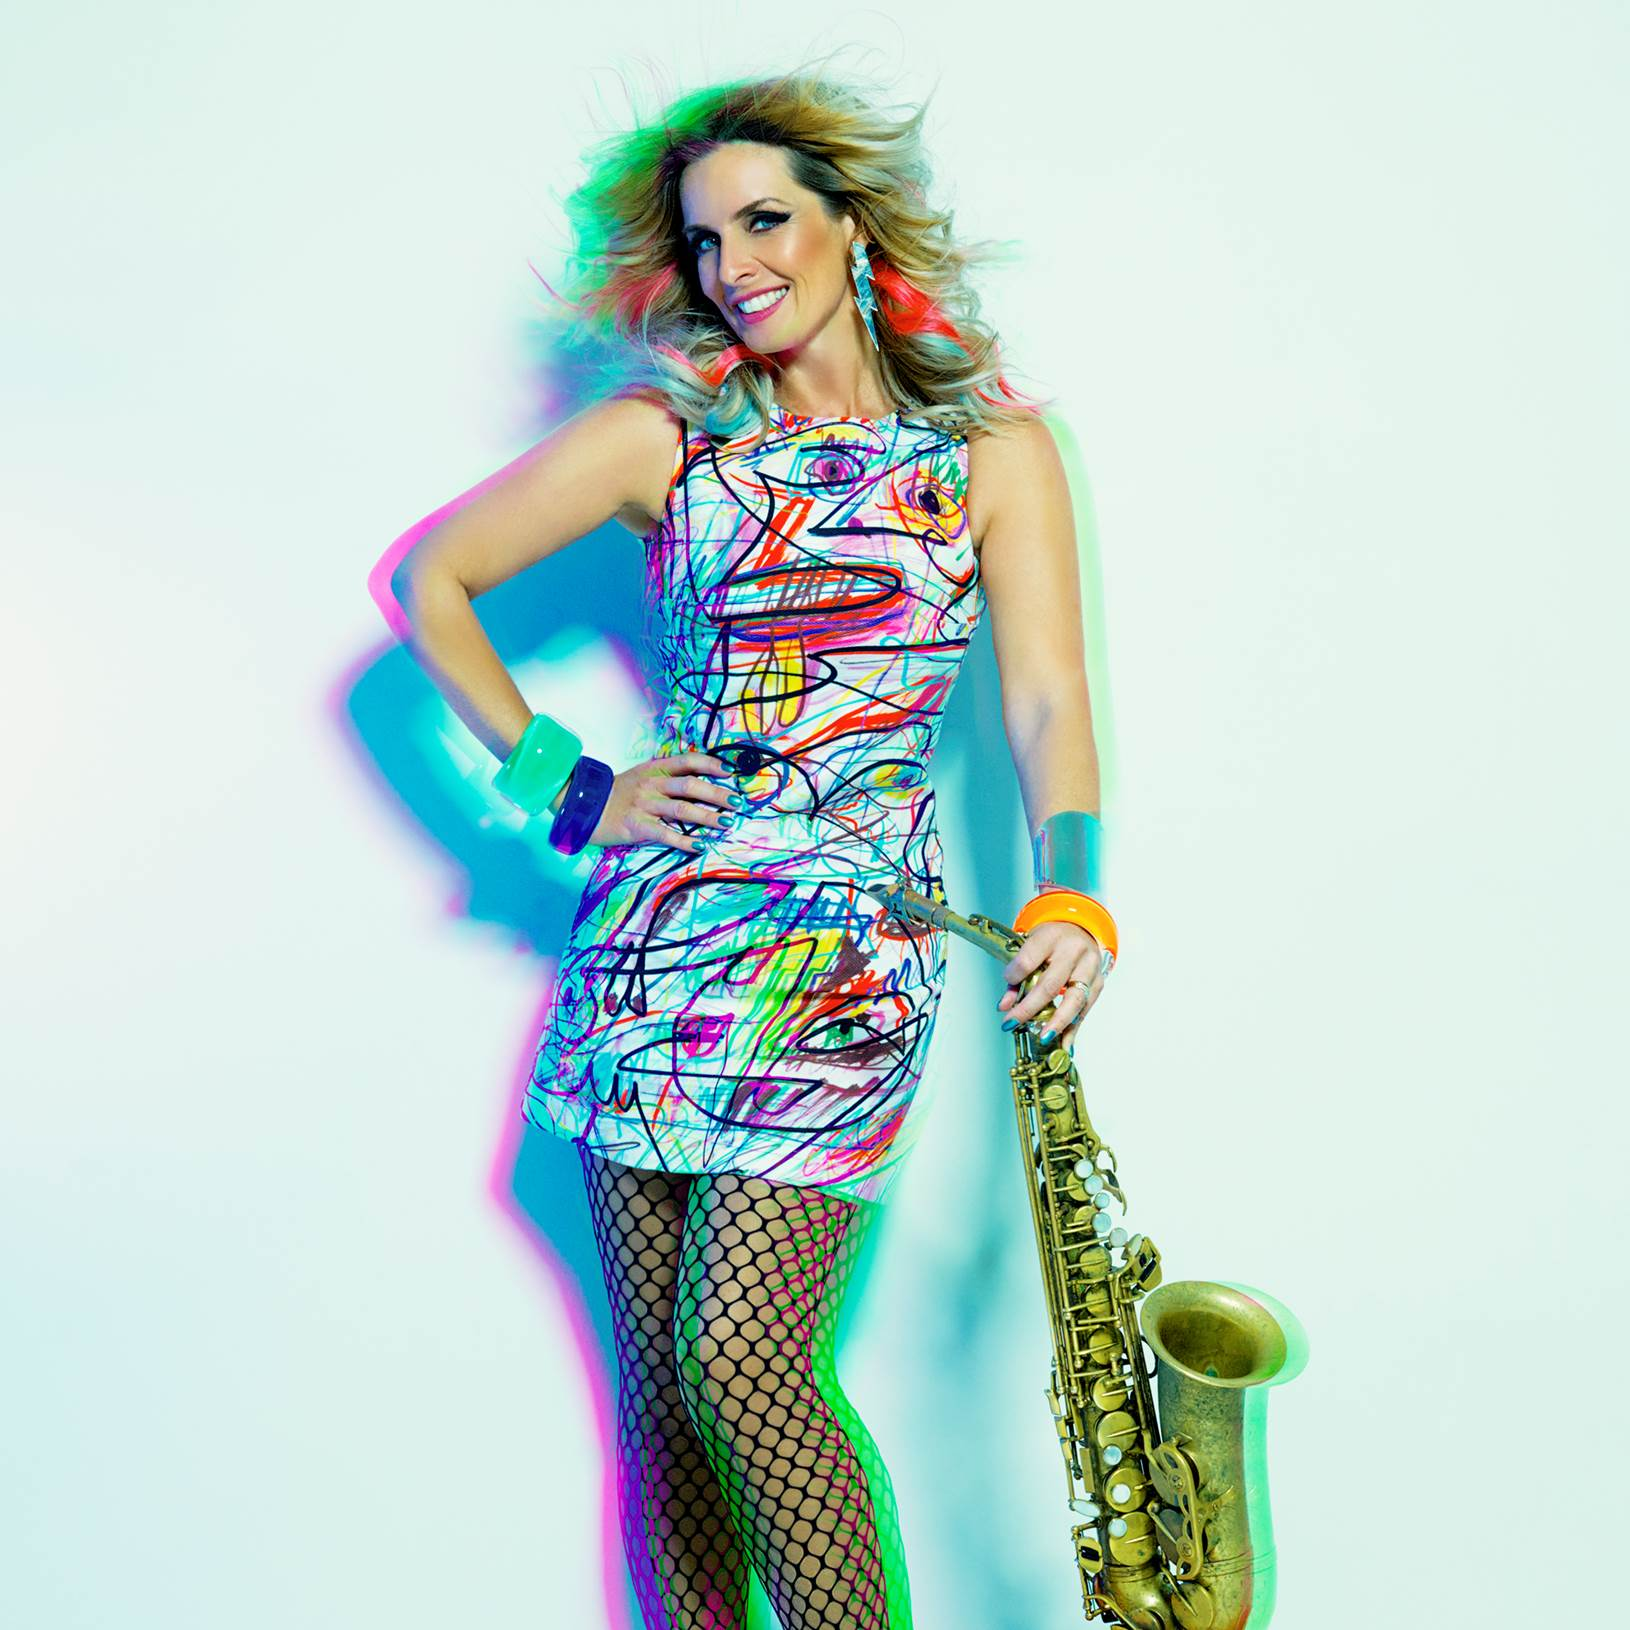 Candy Dulfer - Photo credit: Carin Verbruggen